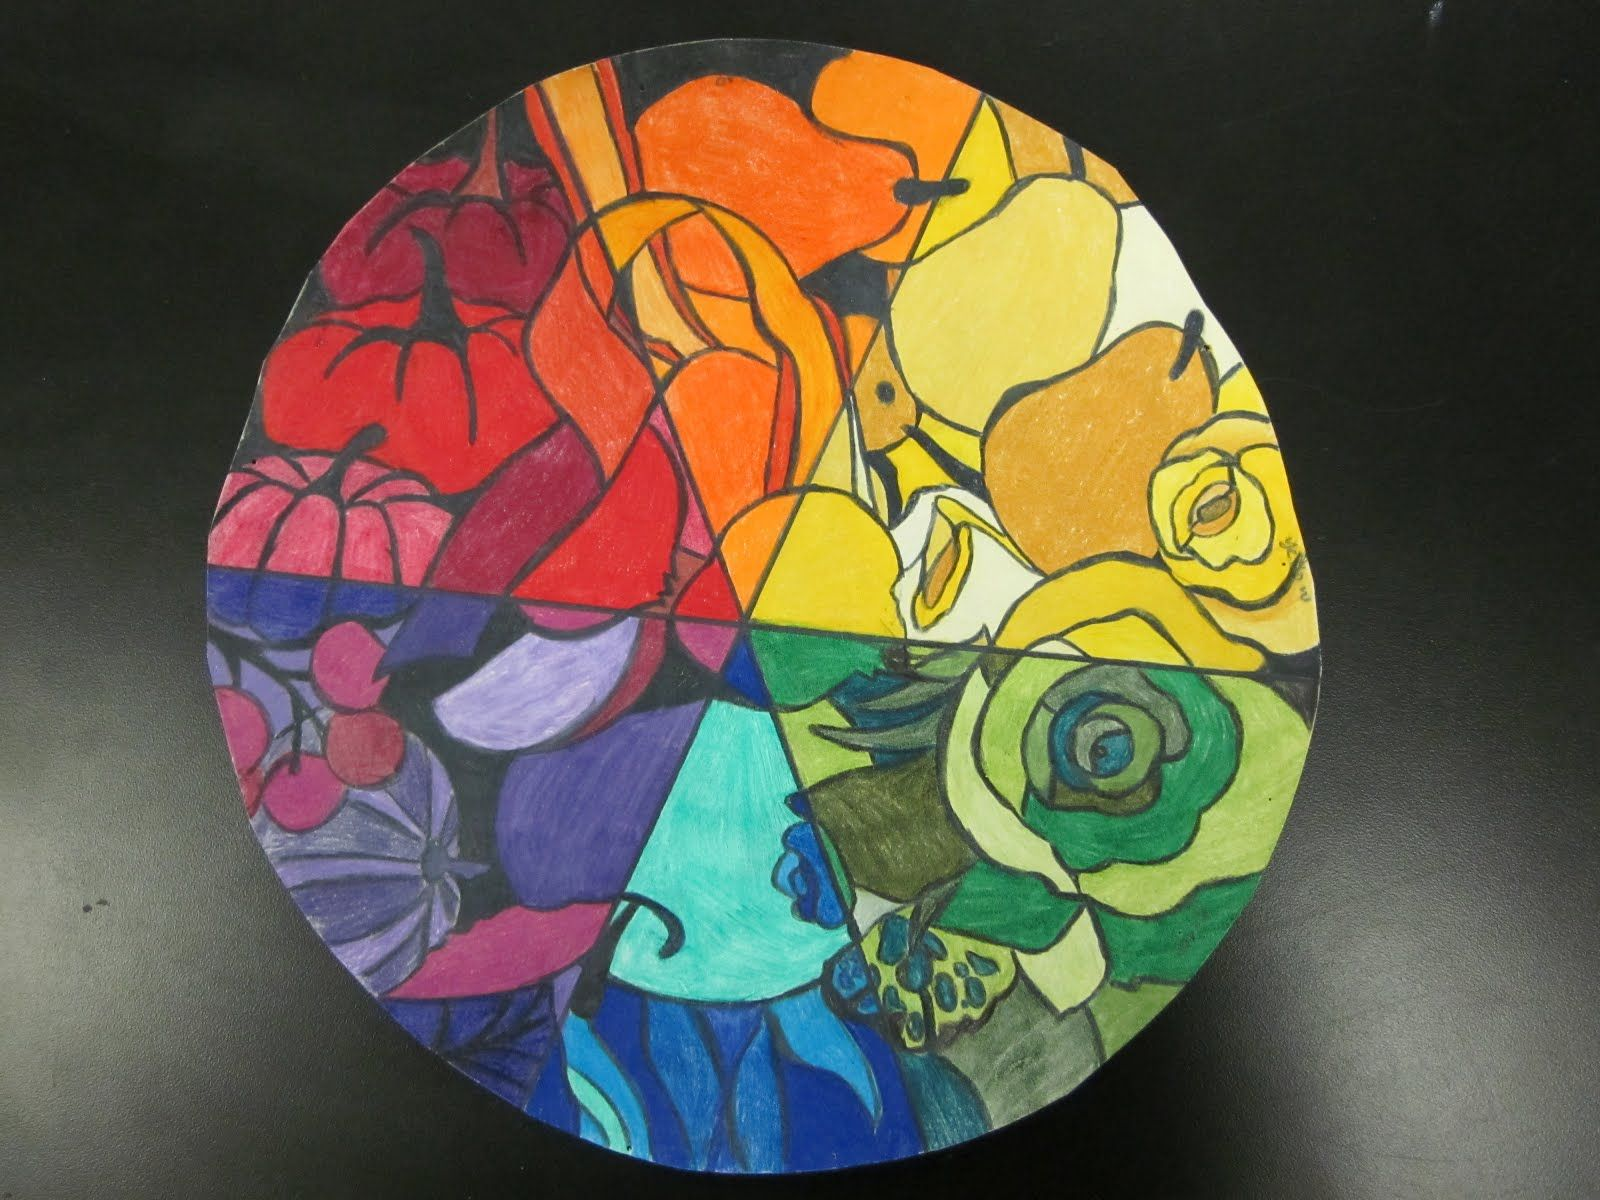 Color elements of art is one of the fundamental